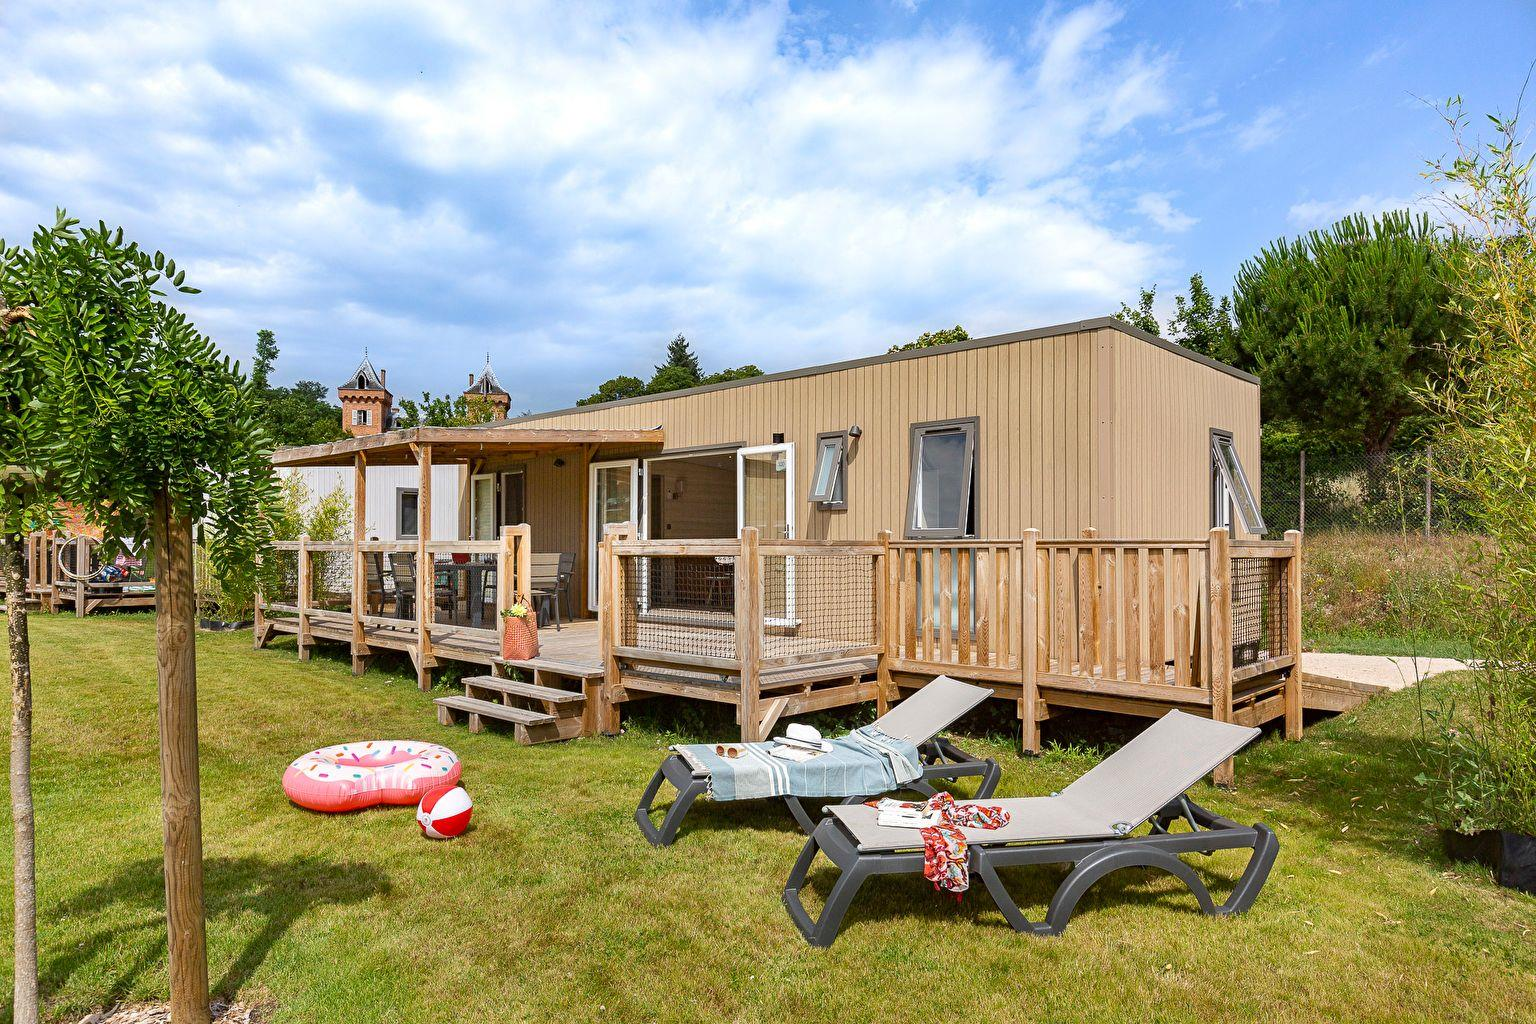 Location - Cottage Key West Family 3 Chambres - 2 Salles De Bain - Climatisation Premium - Camping Sandaya Les Alicourts Resort